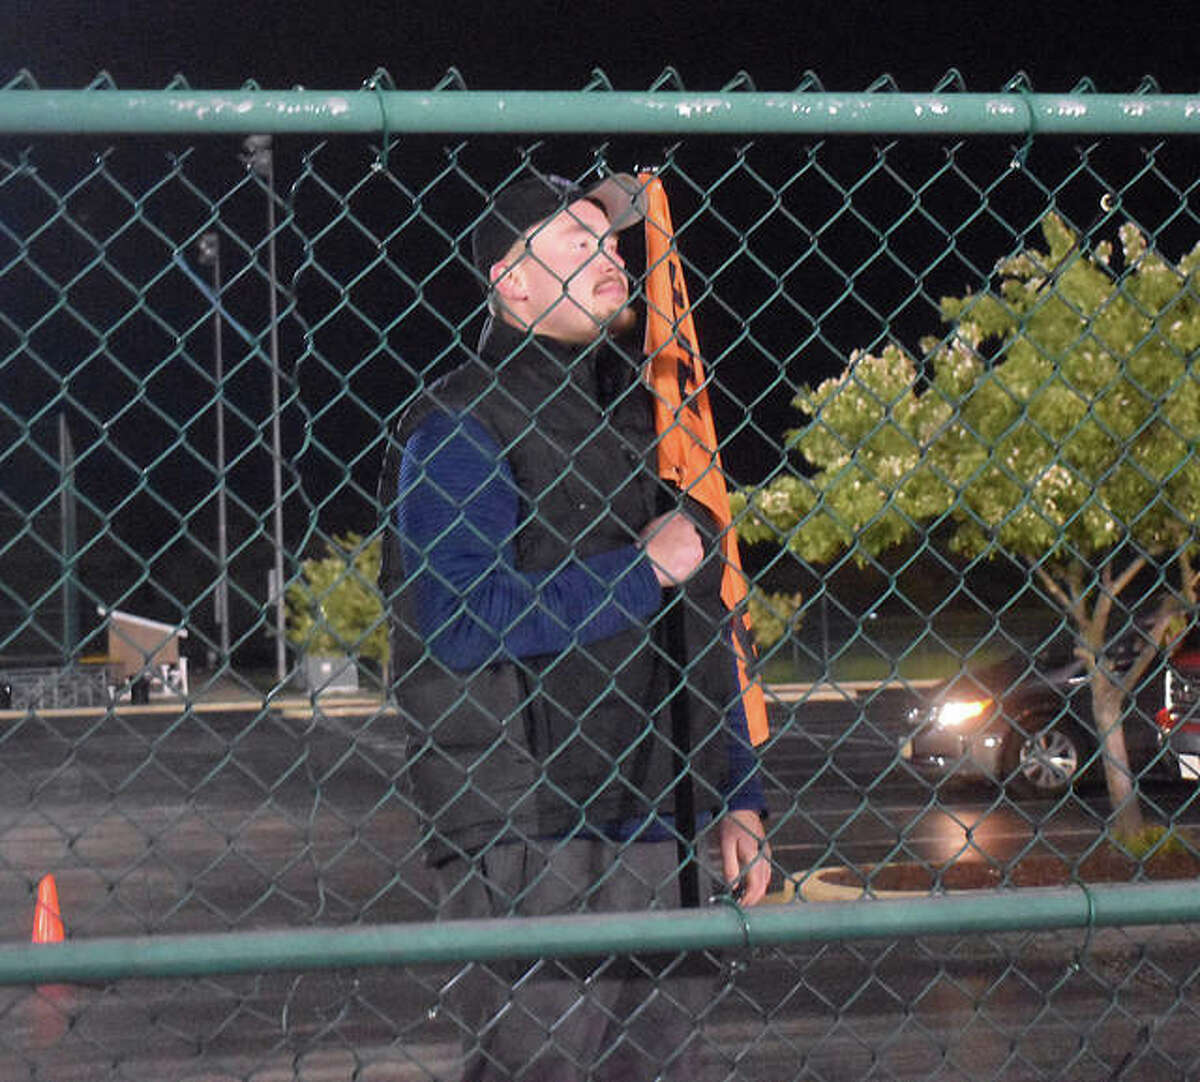 Edwardsville senior Jacob Kitchen looks at the football field from behind the gate in the parking lot in April. The Southwestern Conference schools lit up football fields and baseball stadiums at 20:20 military time on a Friday night in April in honor of the 2020 class.